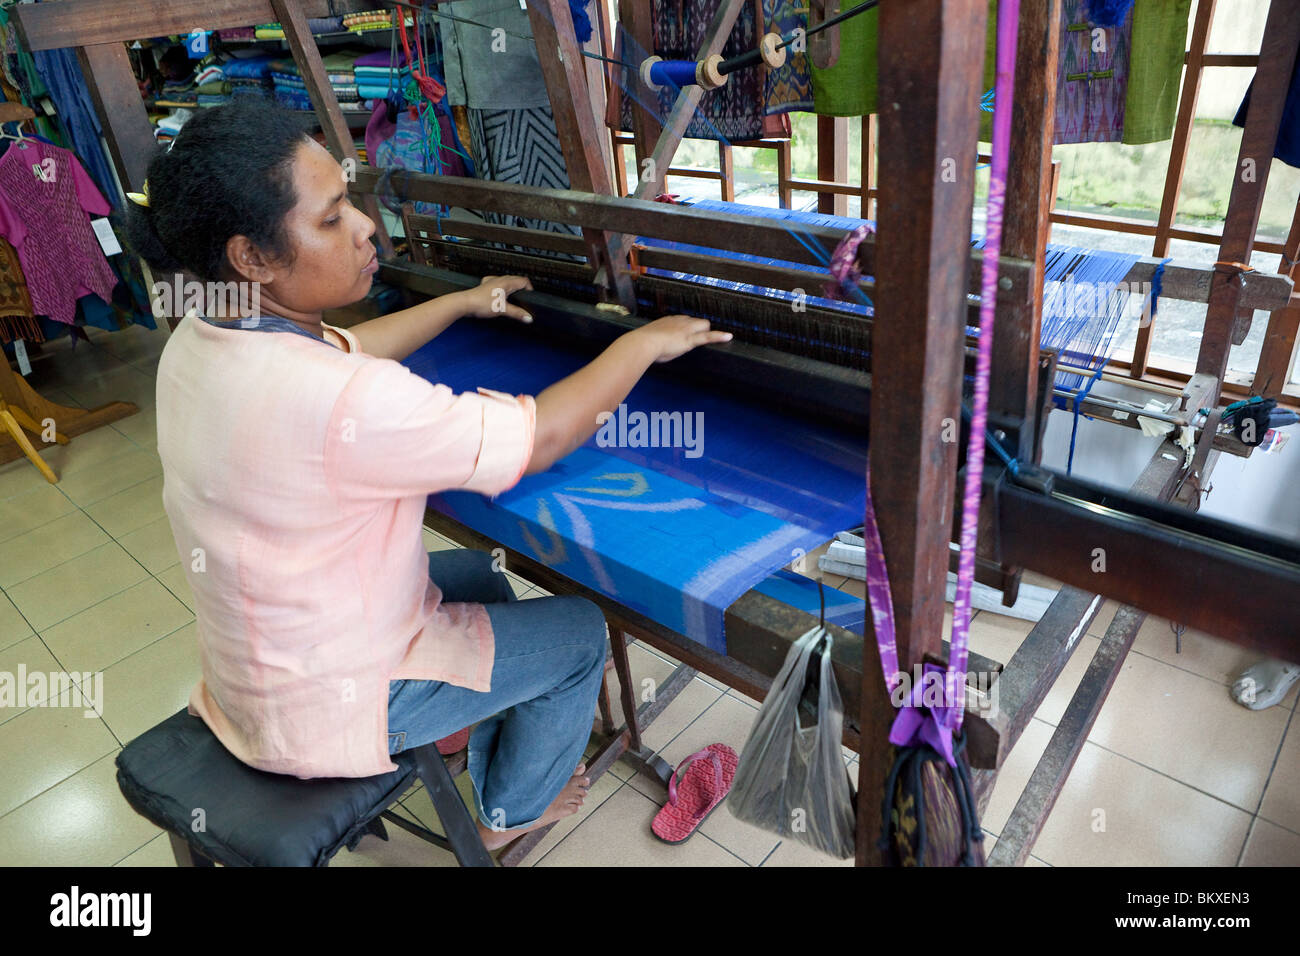 Ikat weaving in Ubud, Bali, Indonesia - Stock Image